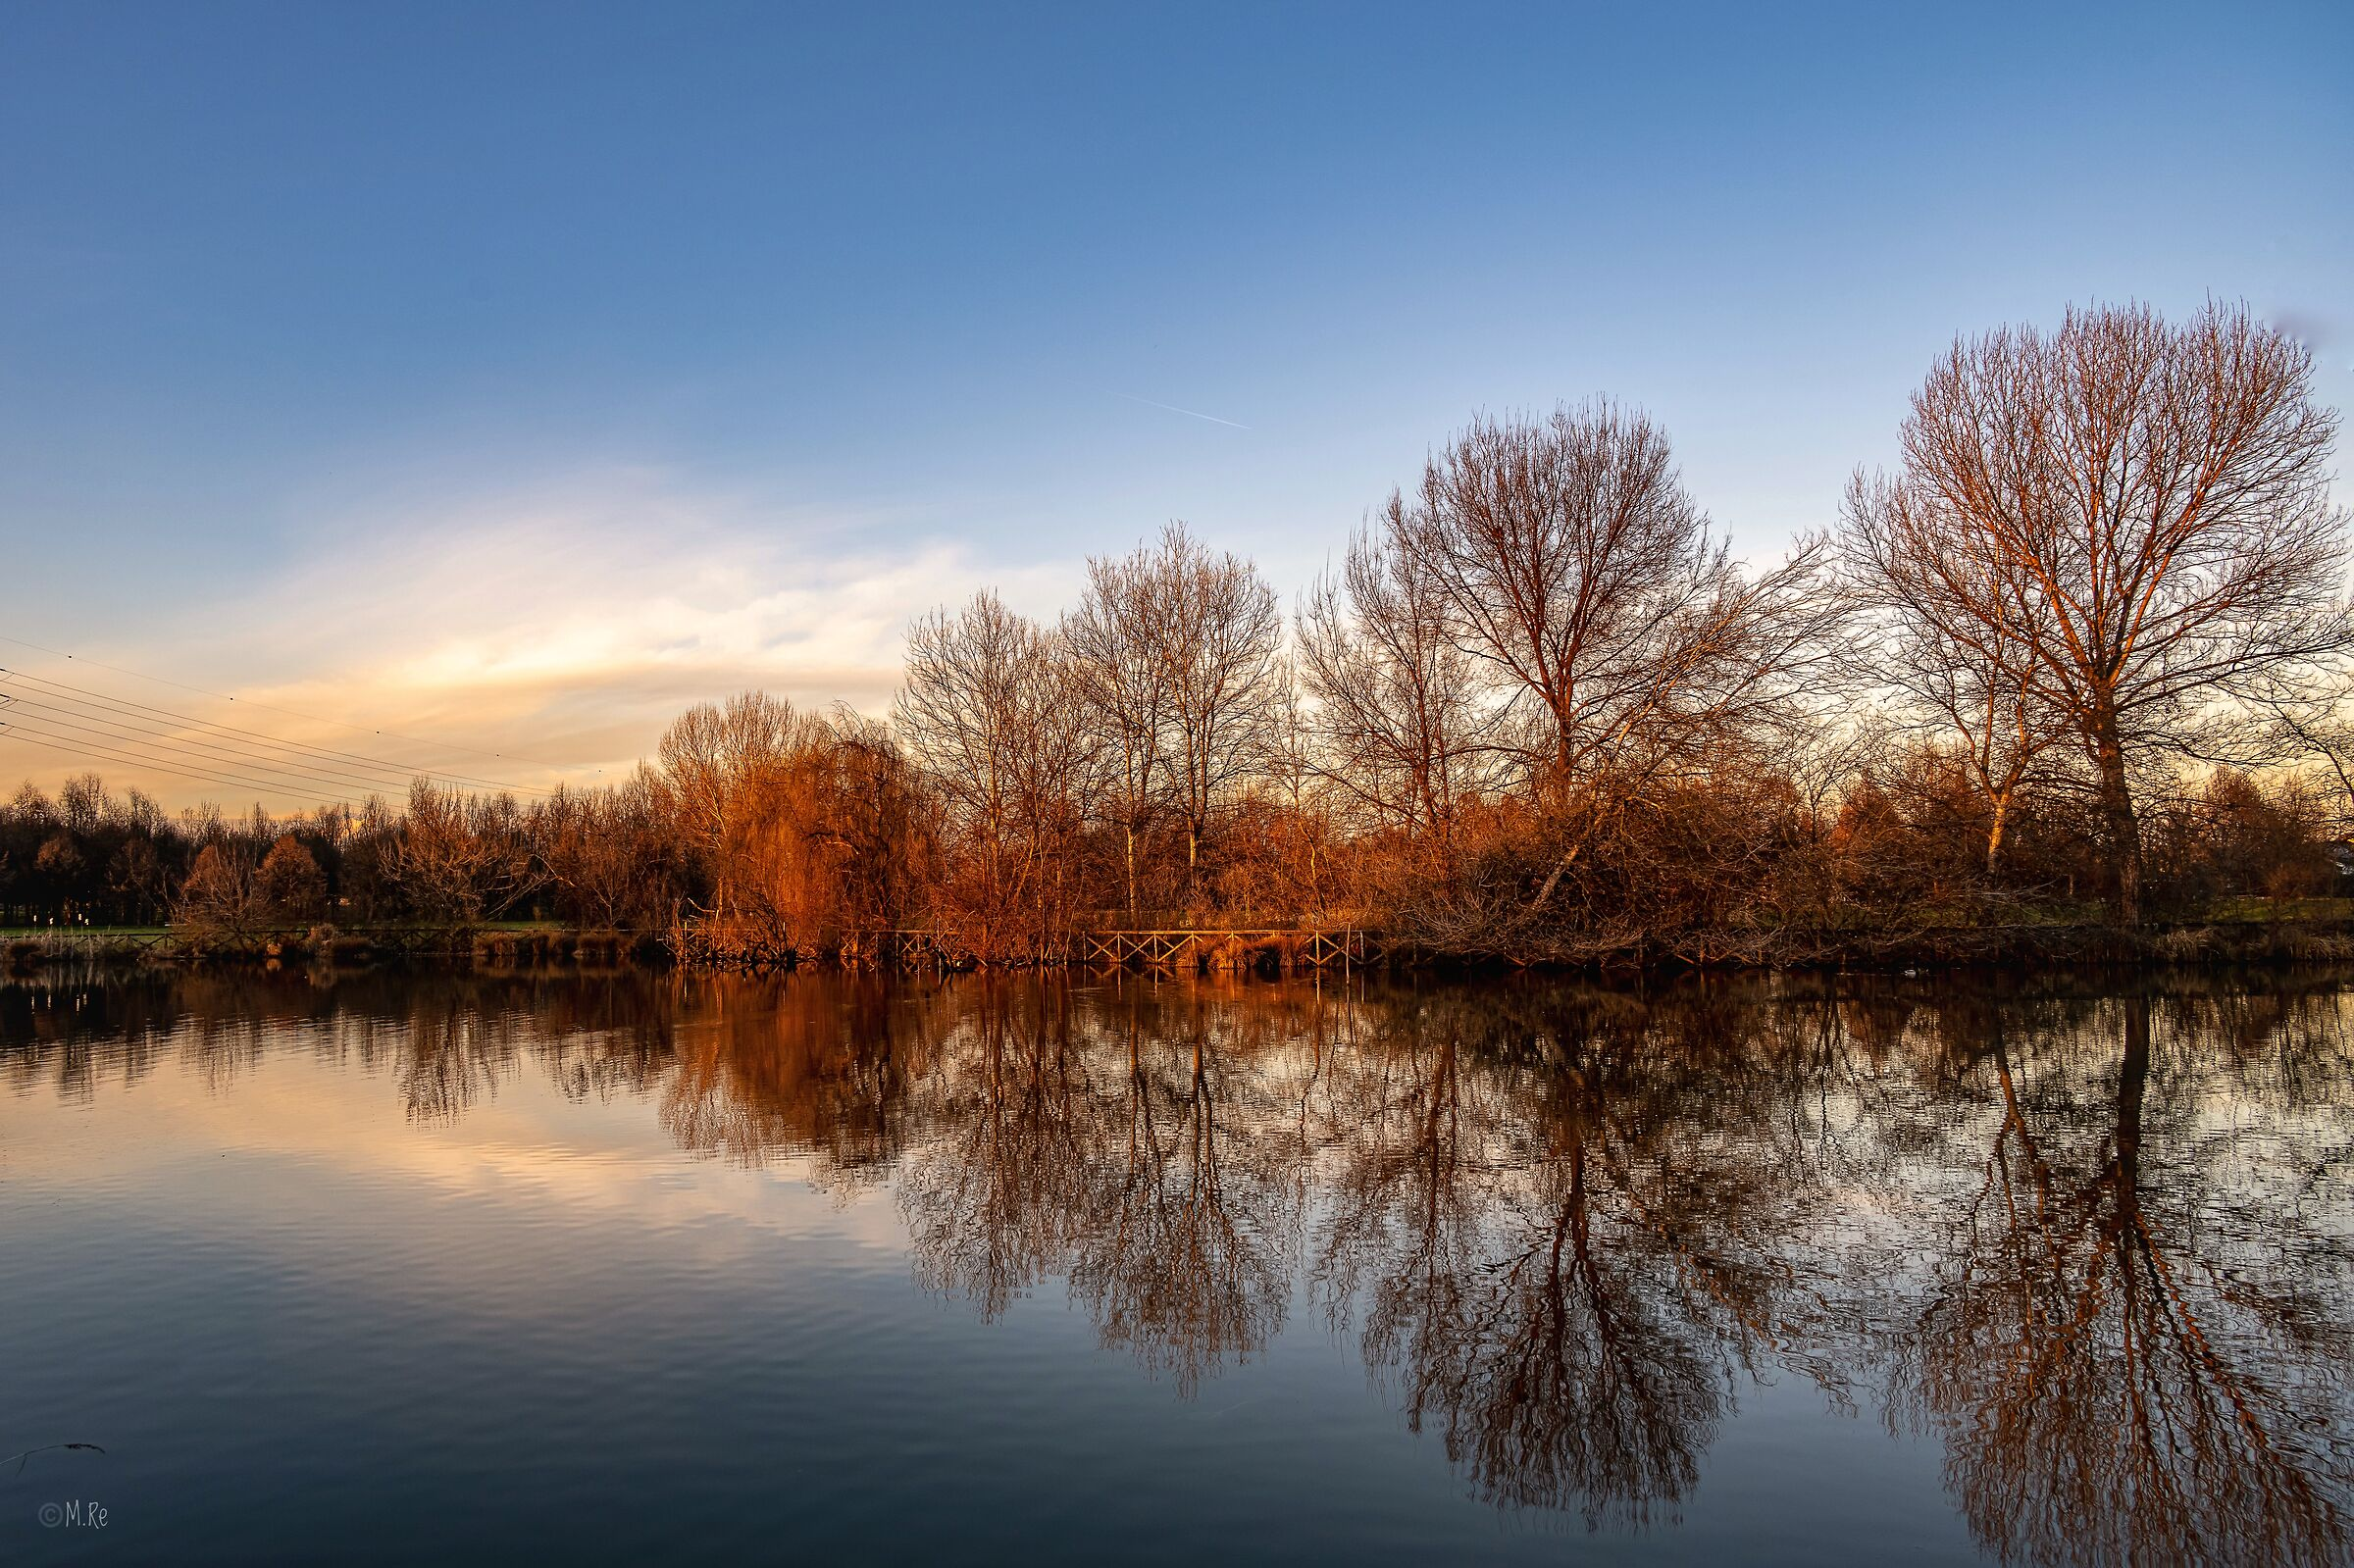 Reflections in the lake...